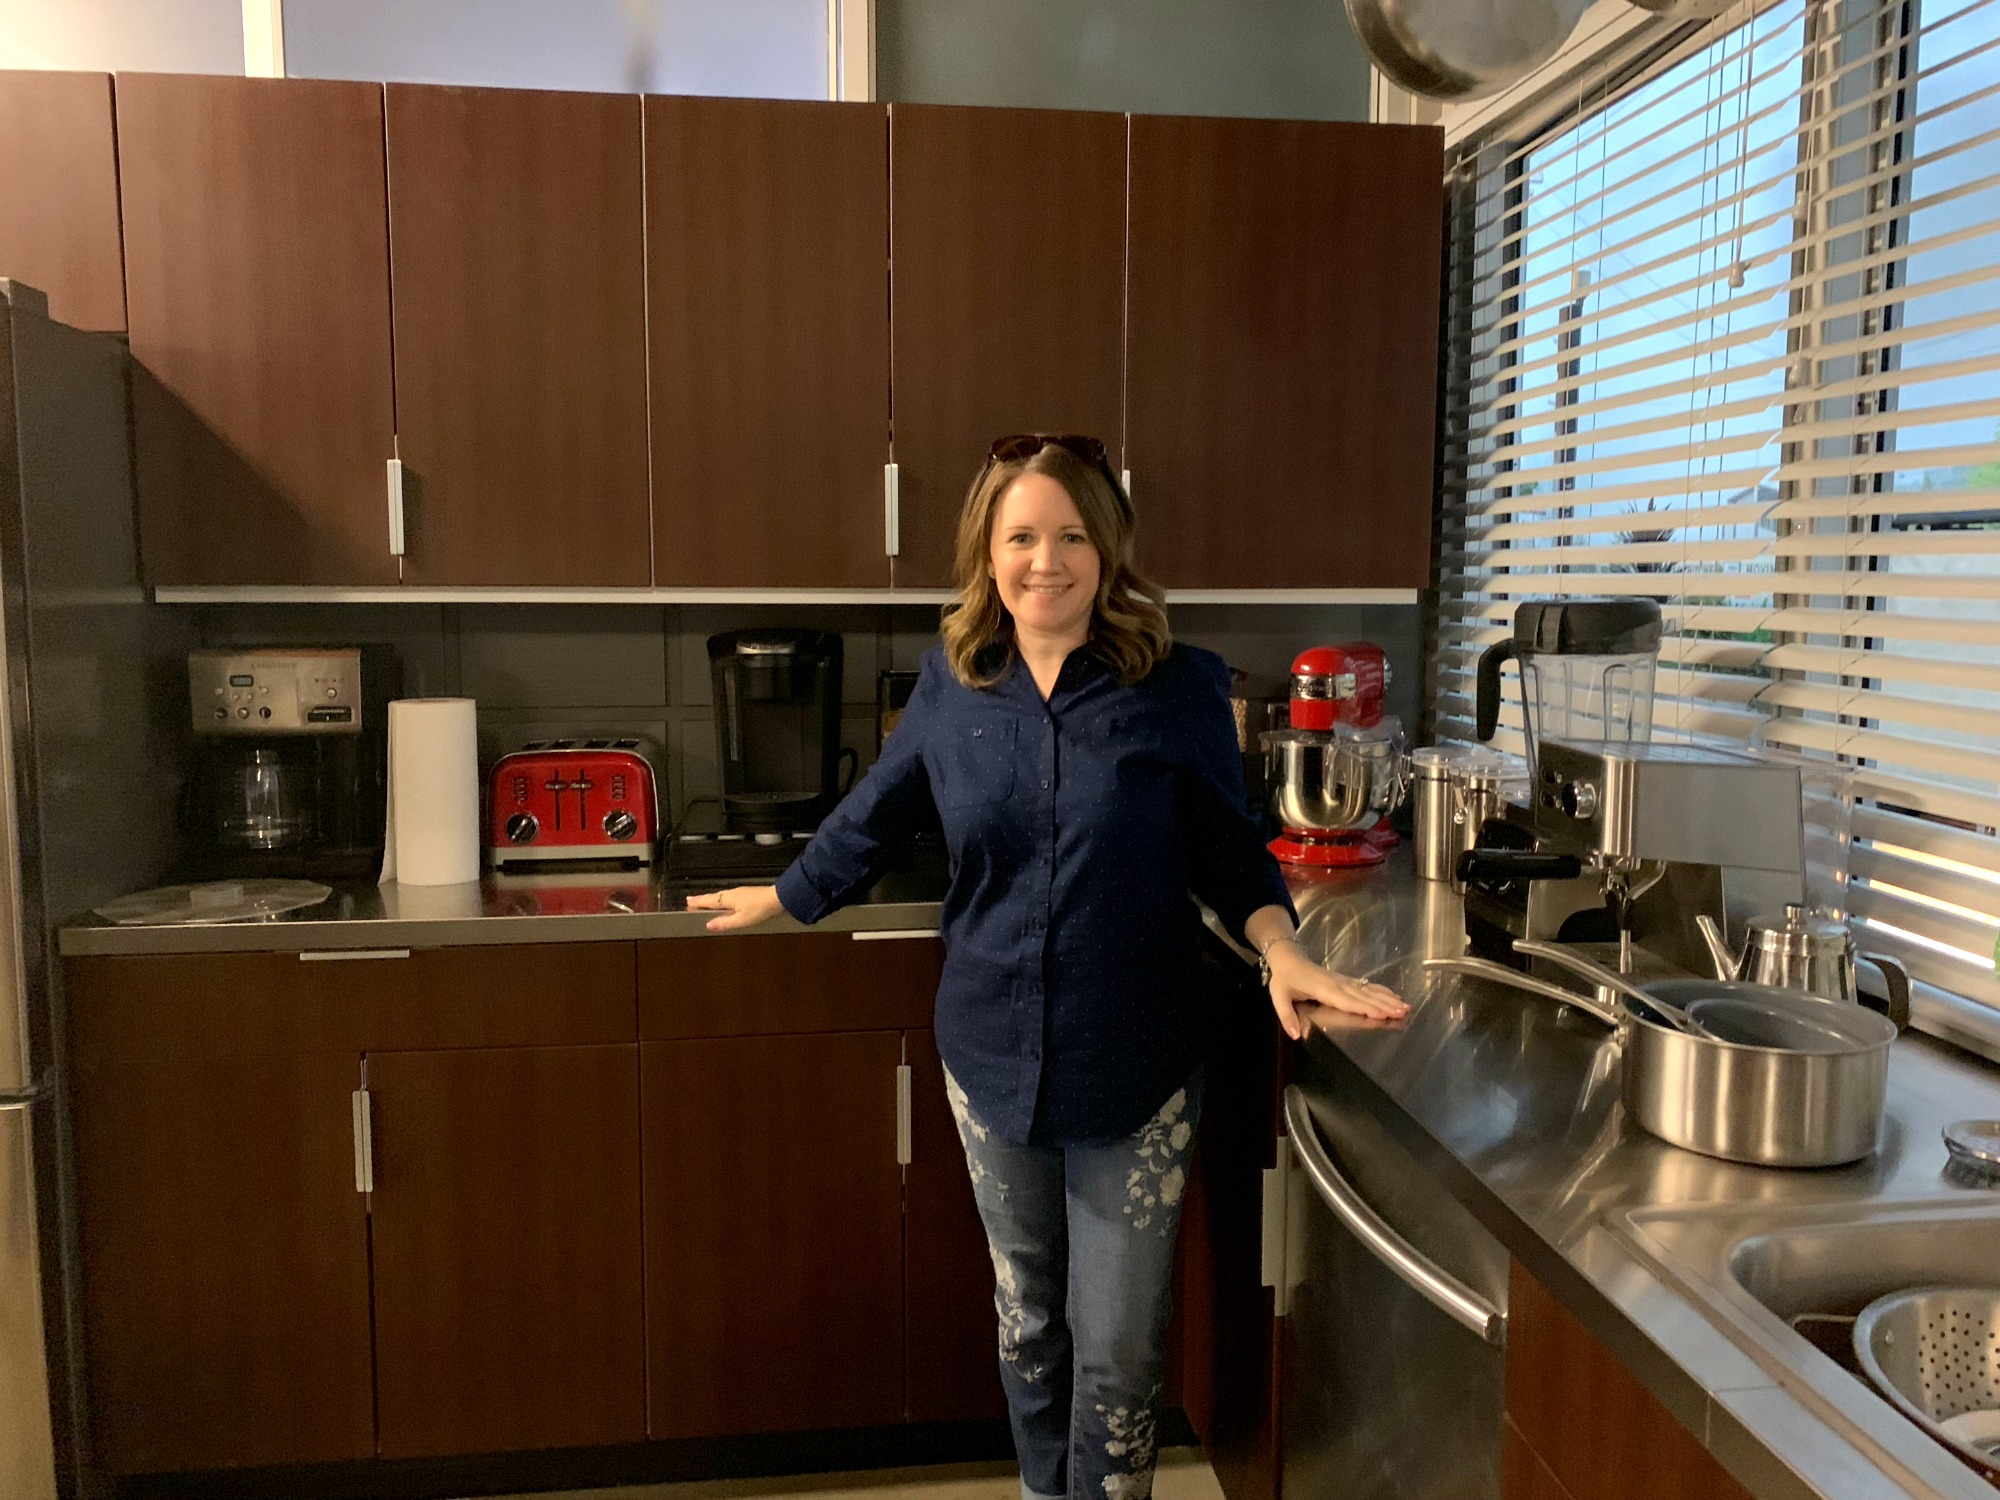 Kitchen on set of Station 19 TV show